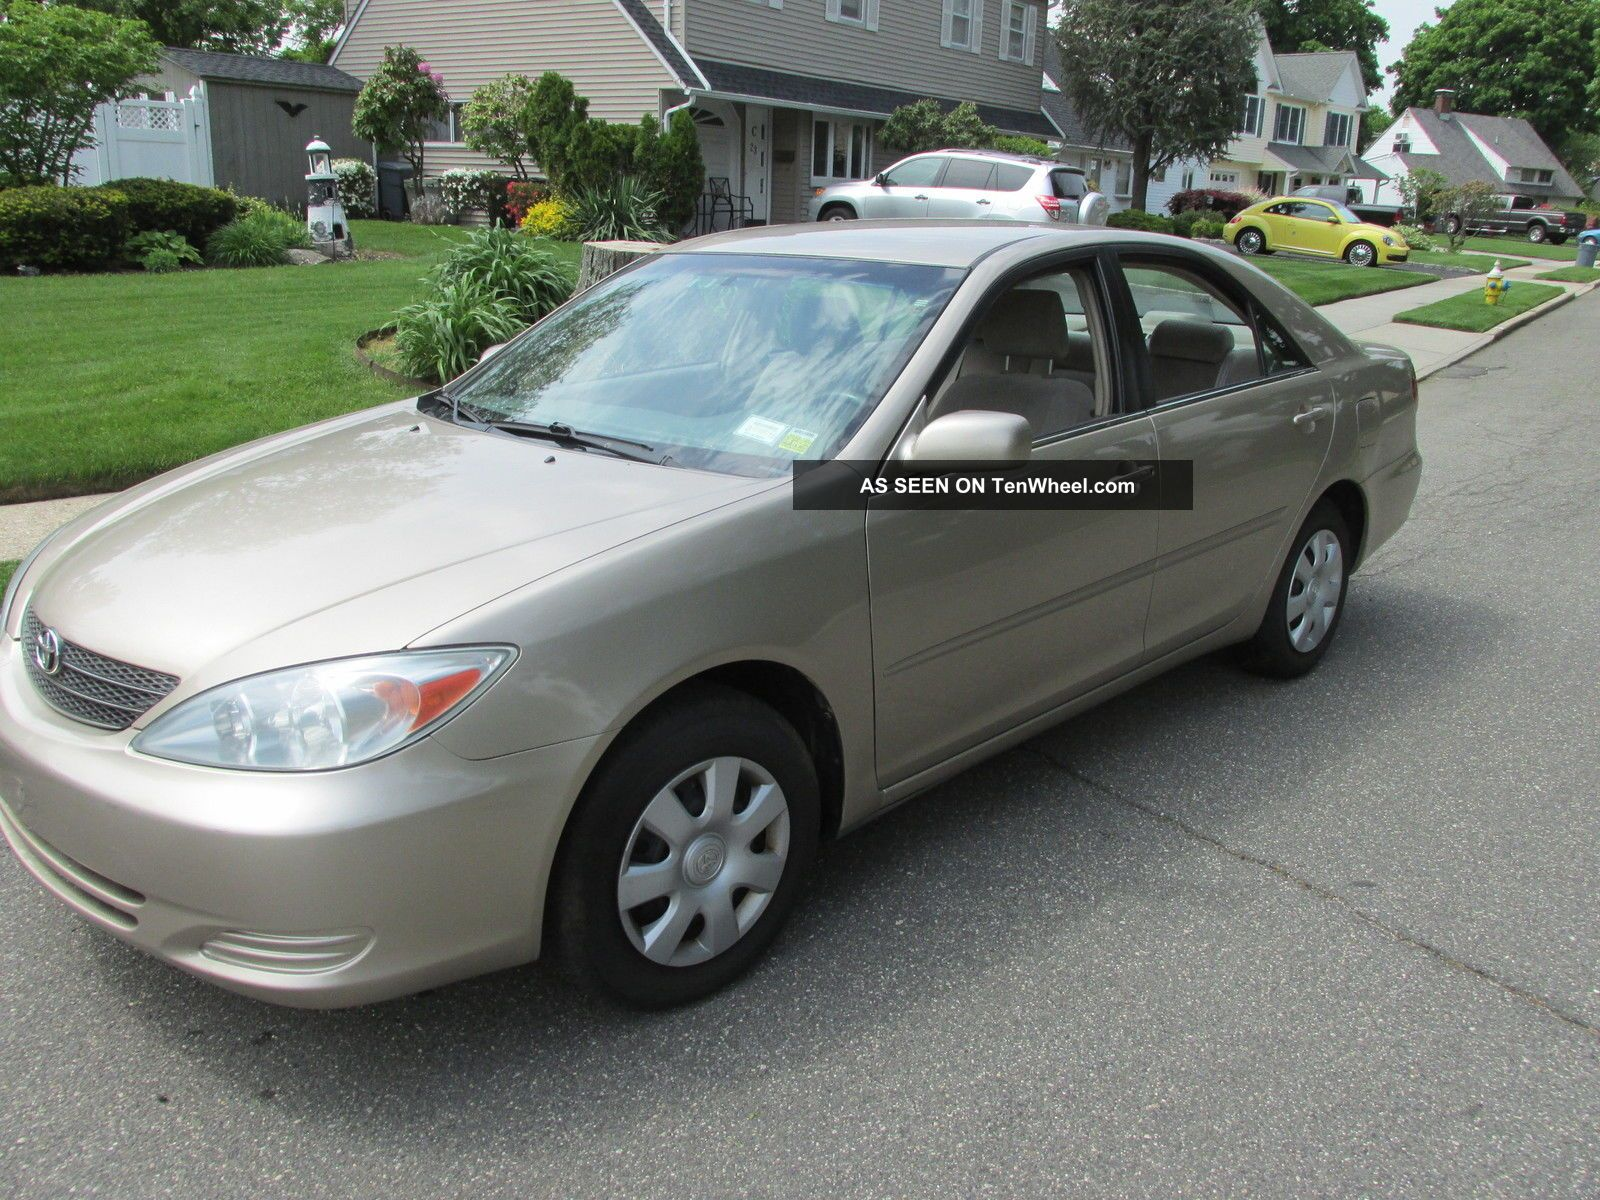 2002 toyota camry le one owner runs and drives like a dream. Black Bedroom Furniture Sets. Home Design Ideas